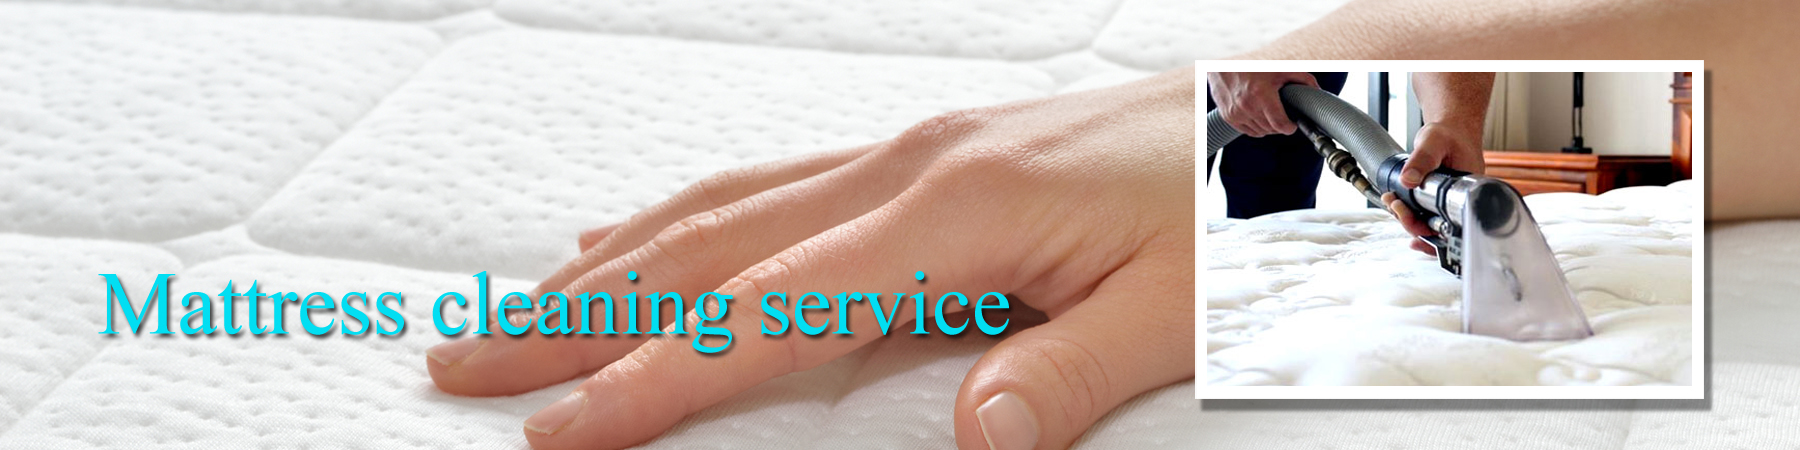 JR Mattress Cleaning Gravesend J R Cleaning